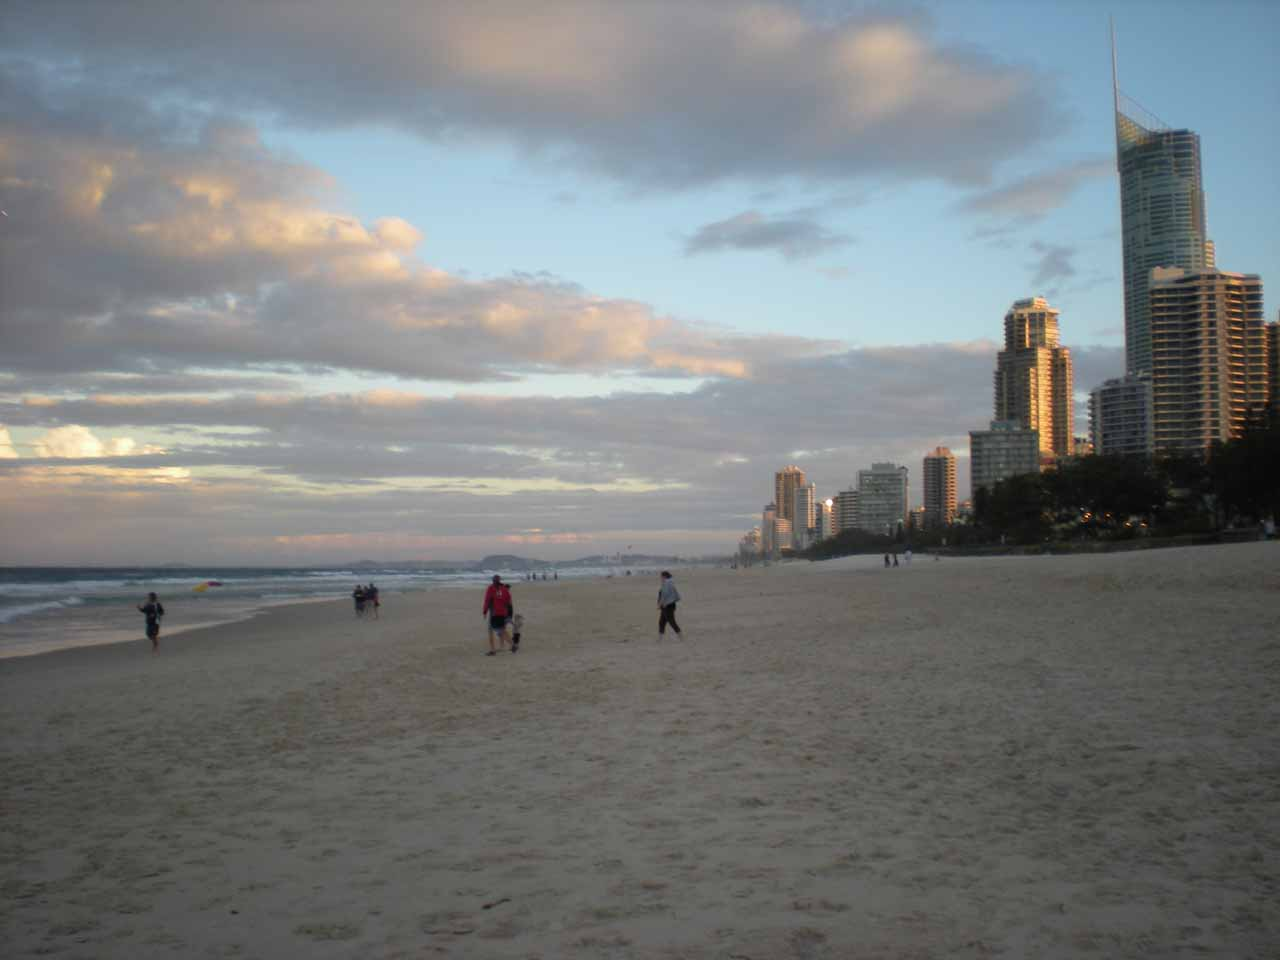 On the beach in the late afternoon at Surfer's Paradise